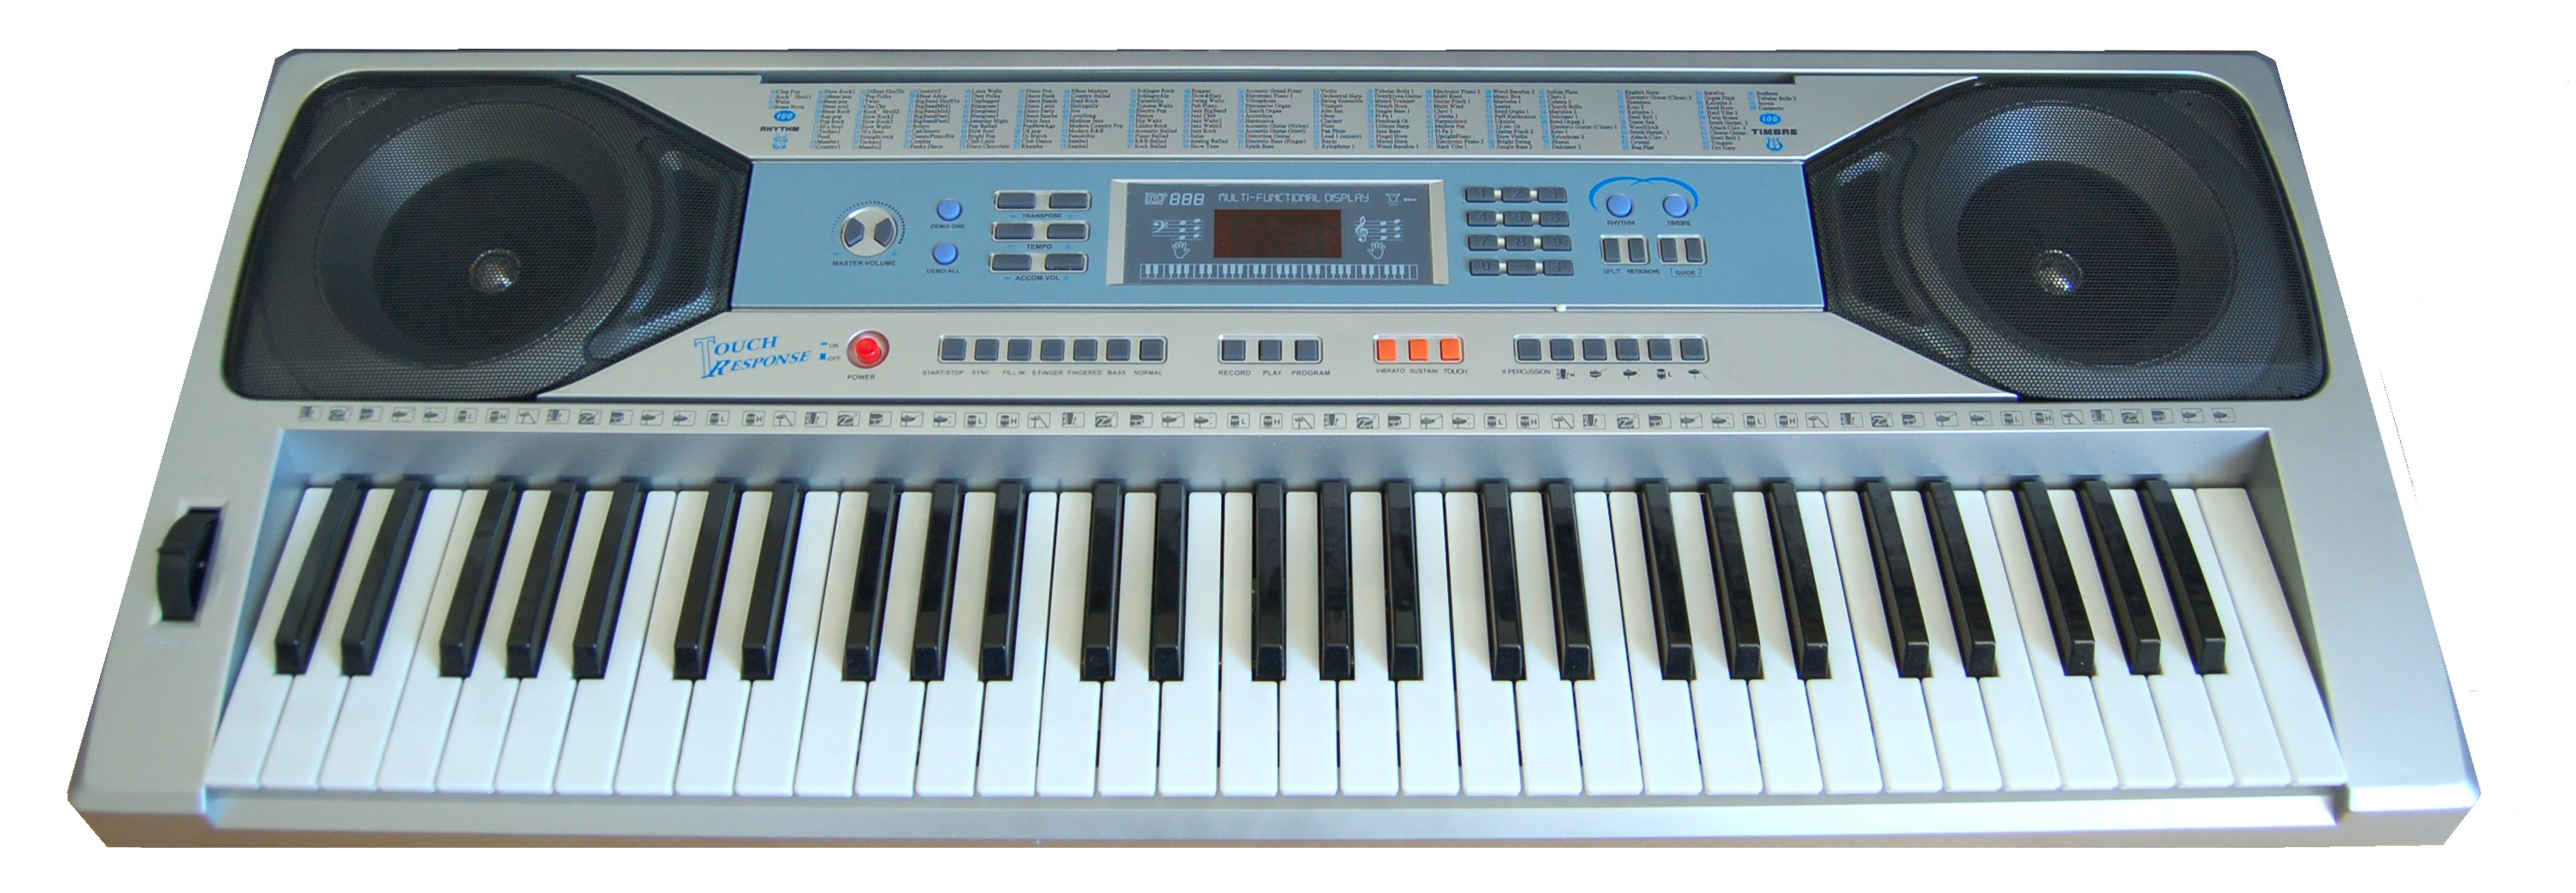 KEYTEK SK600 61 NOTES KEYBOARD